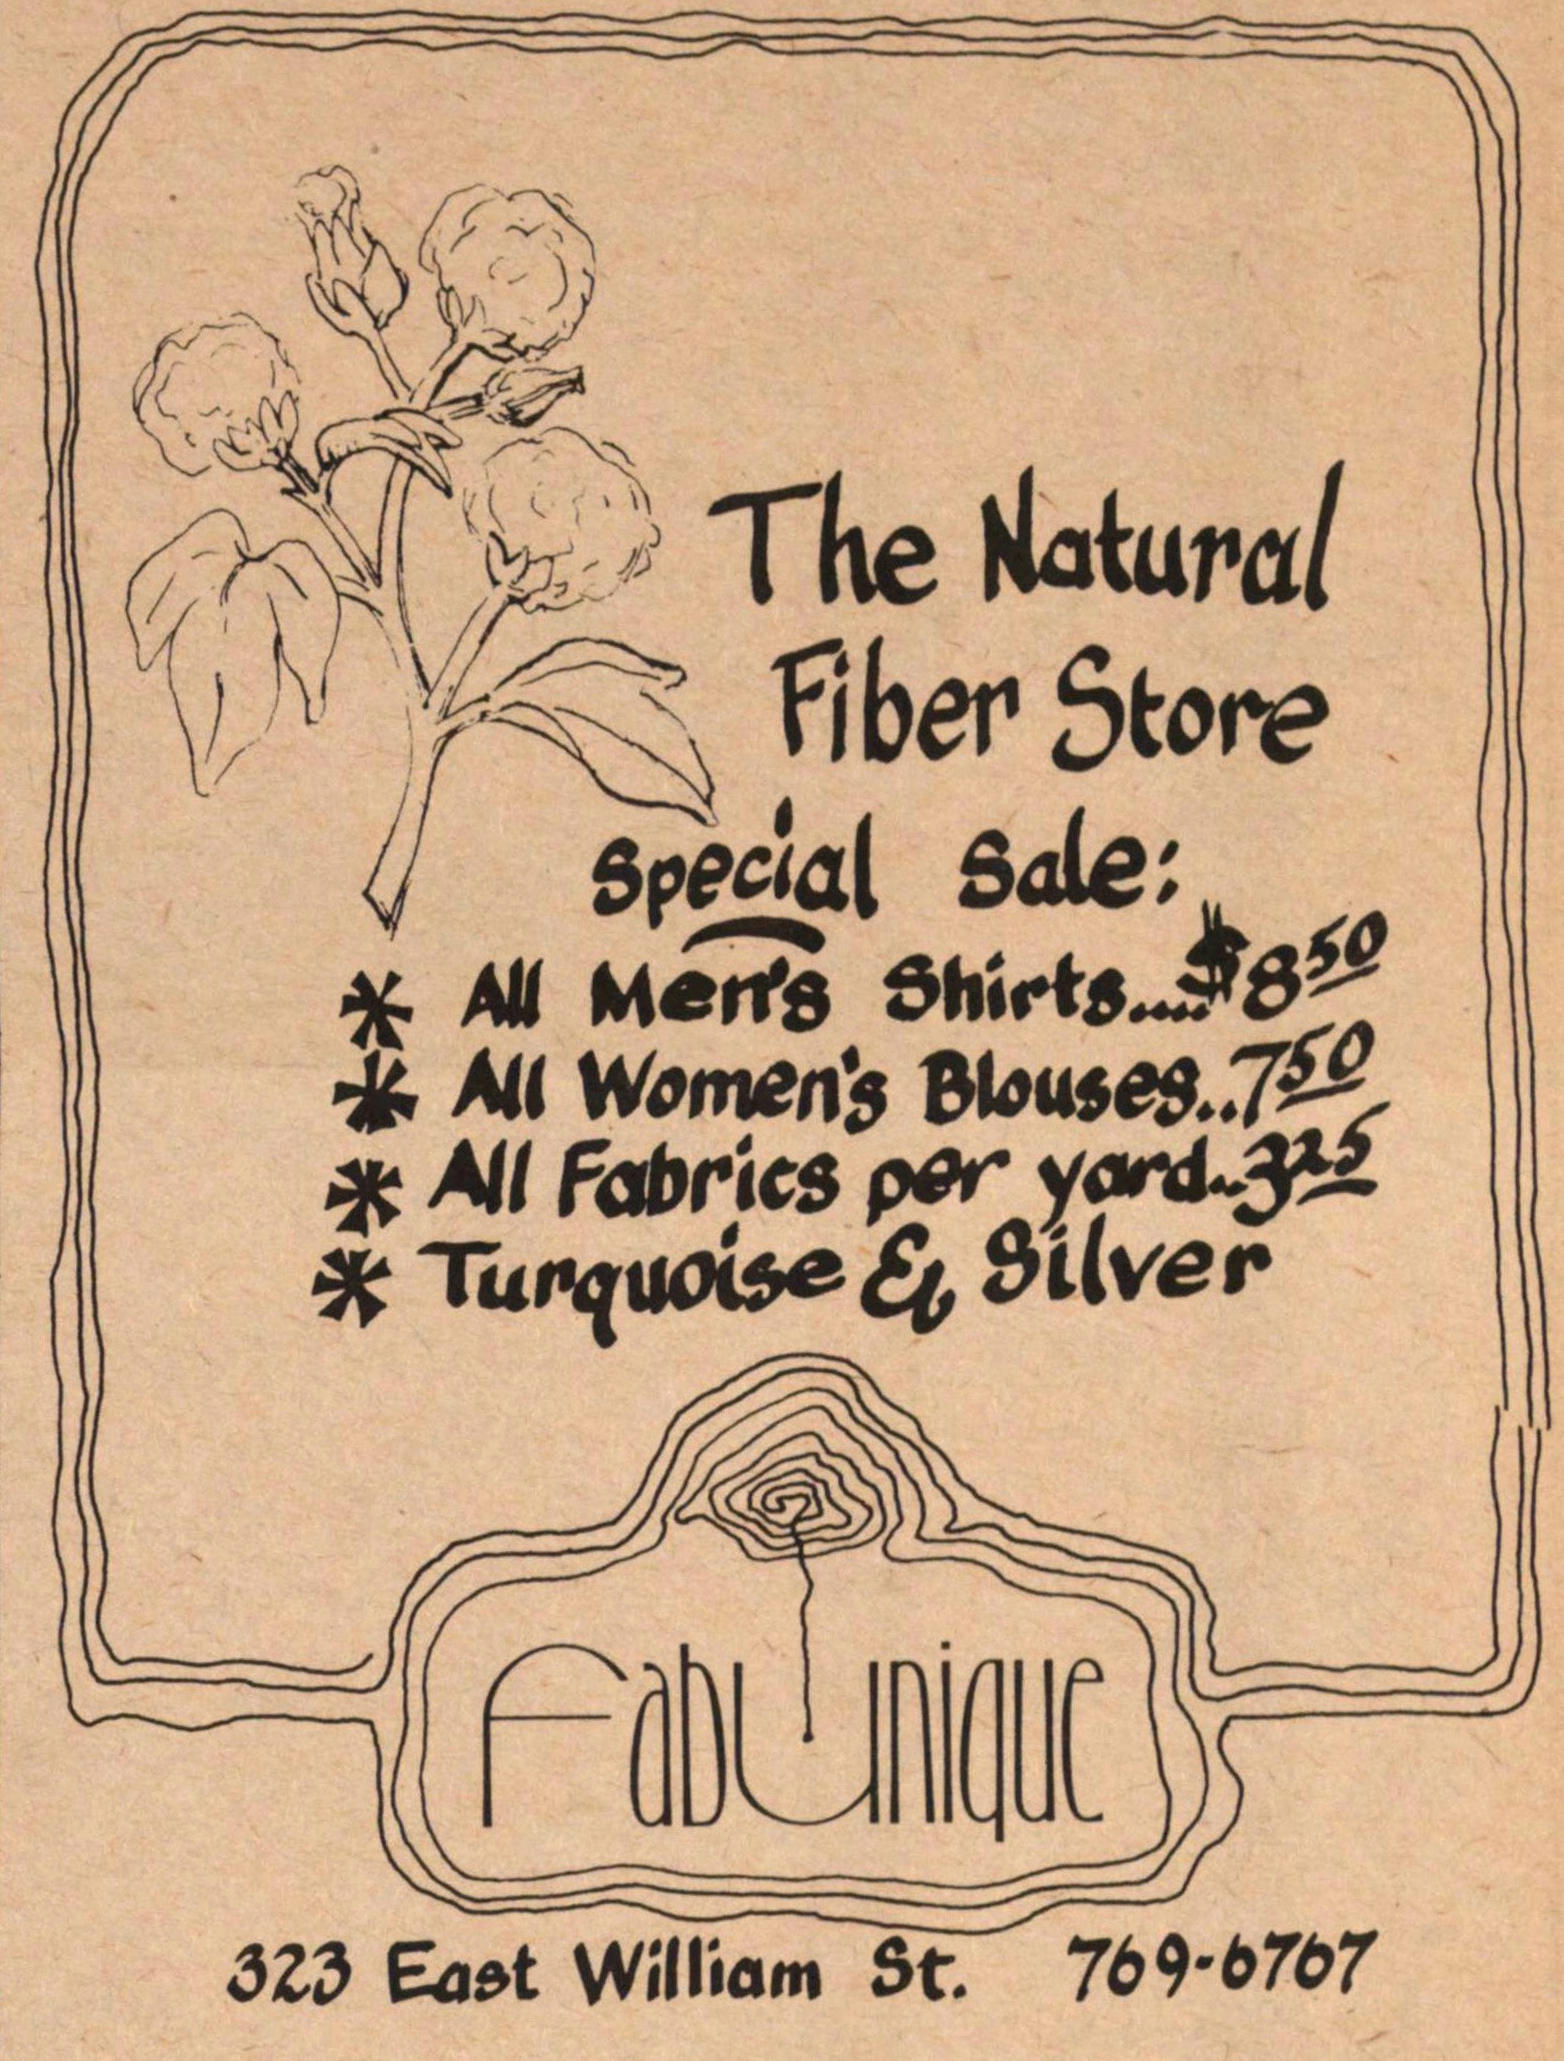 The Natural Fiber Store image